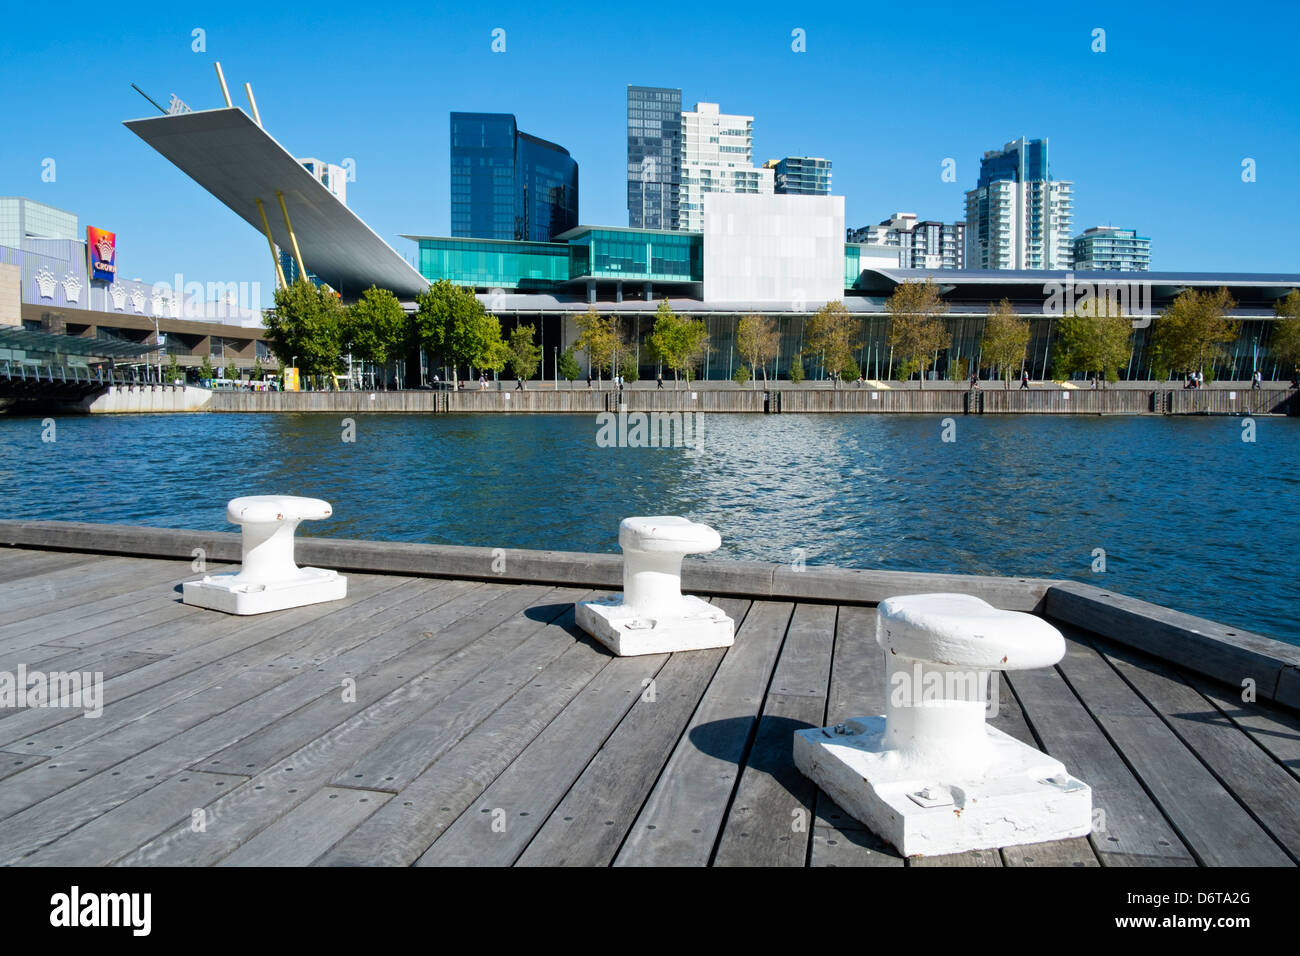 View across Yarra River to Melbourne Exhibition Centre in central Melbourne South Australia - Stock Image